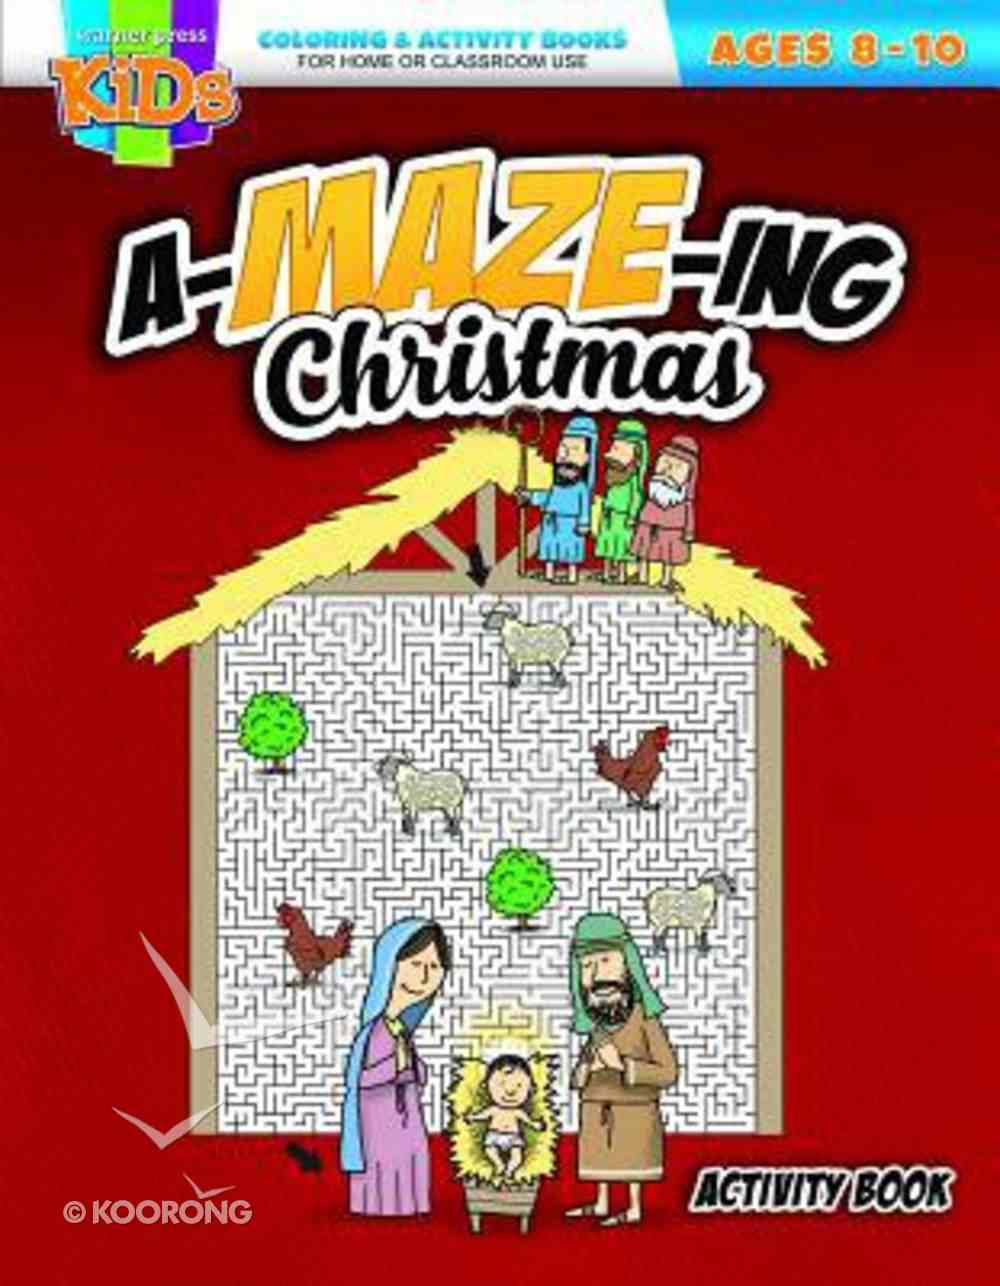 An A-Maze-Ing Christmas (Ages 8-10, Reproducible) (Warner Press Colouring & Activity Books Series) Paperback